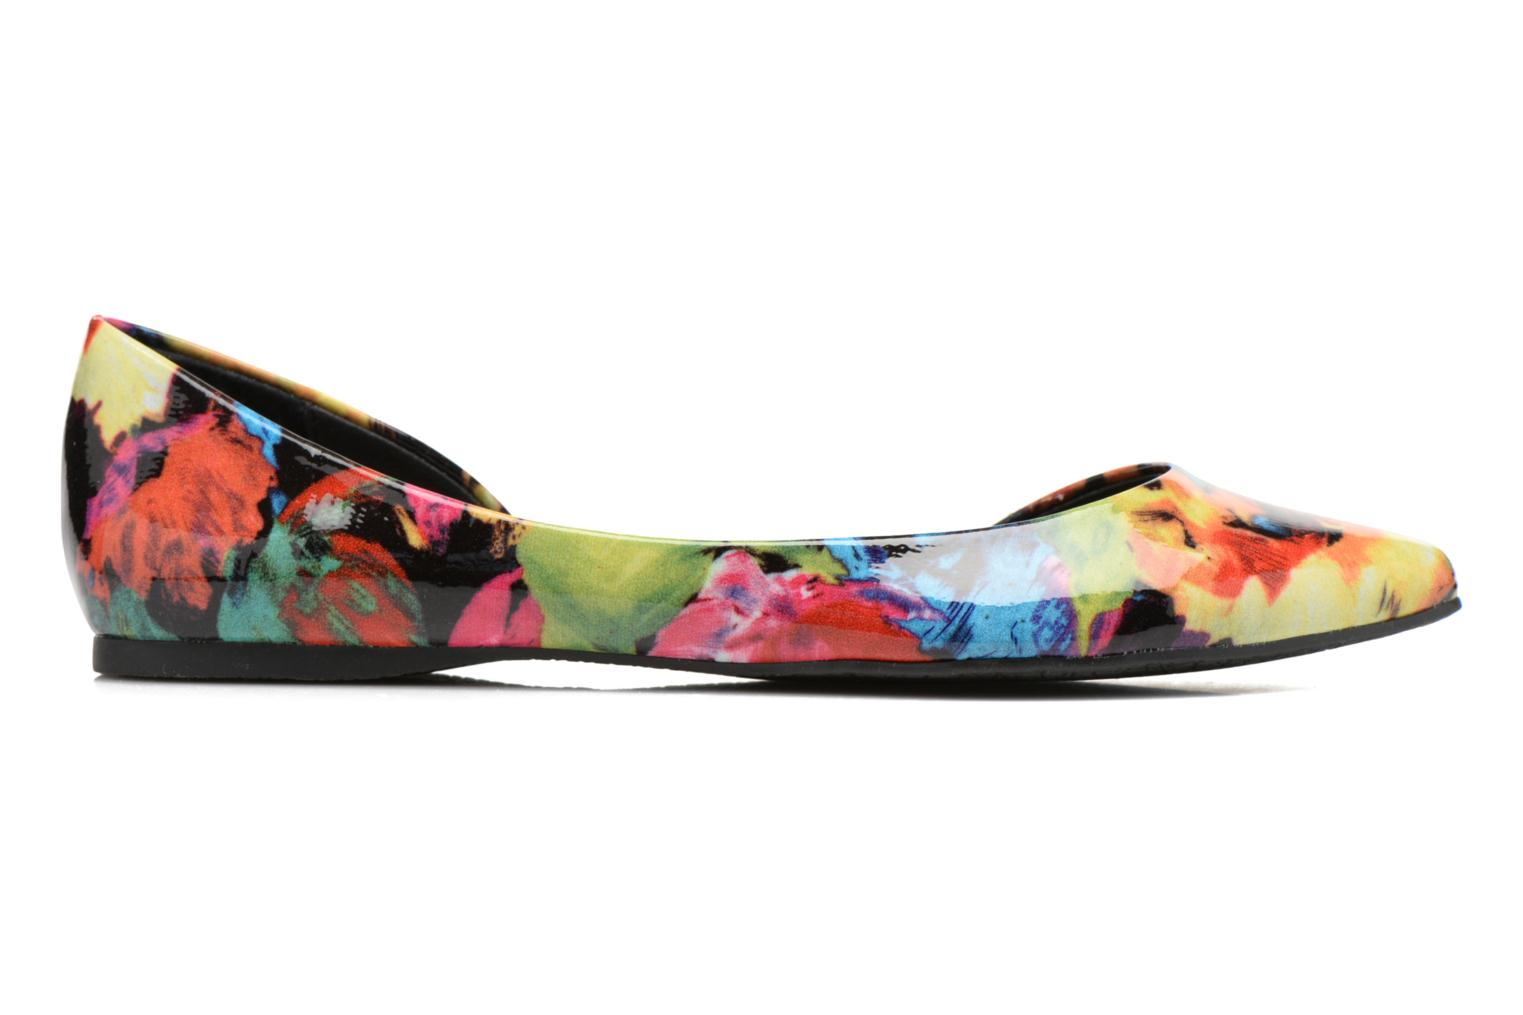 ELUSION Floral Patent